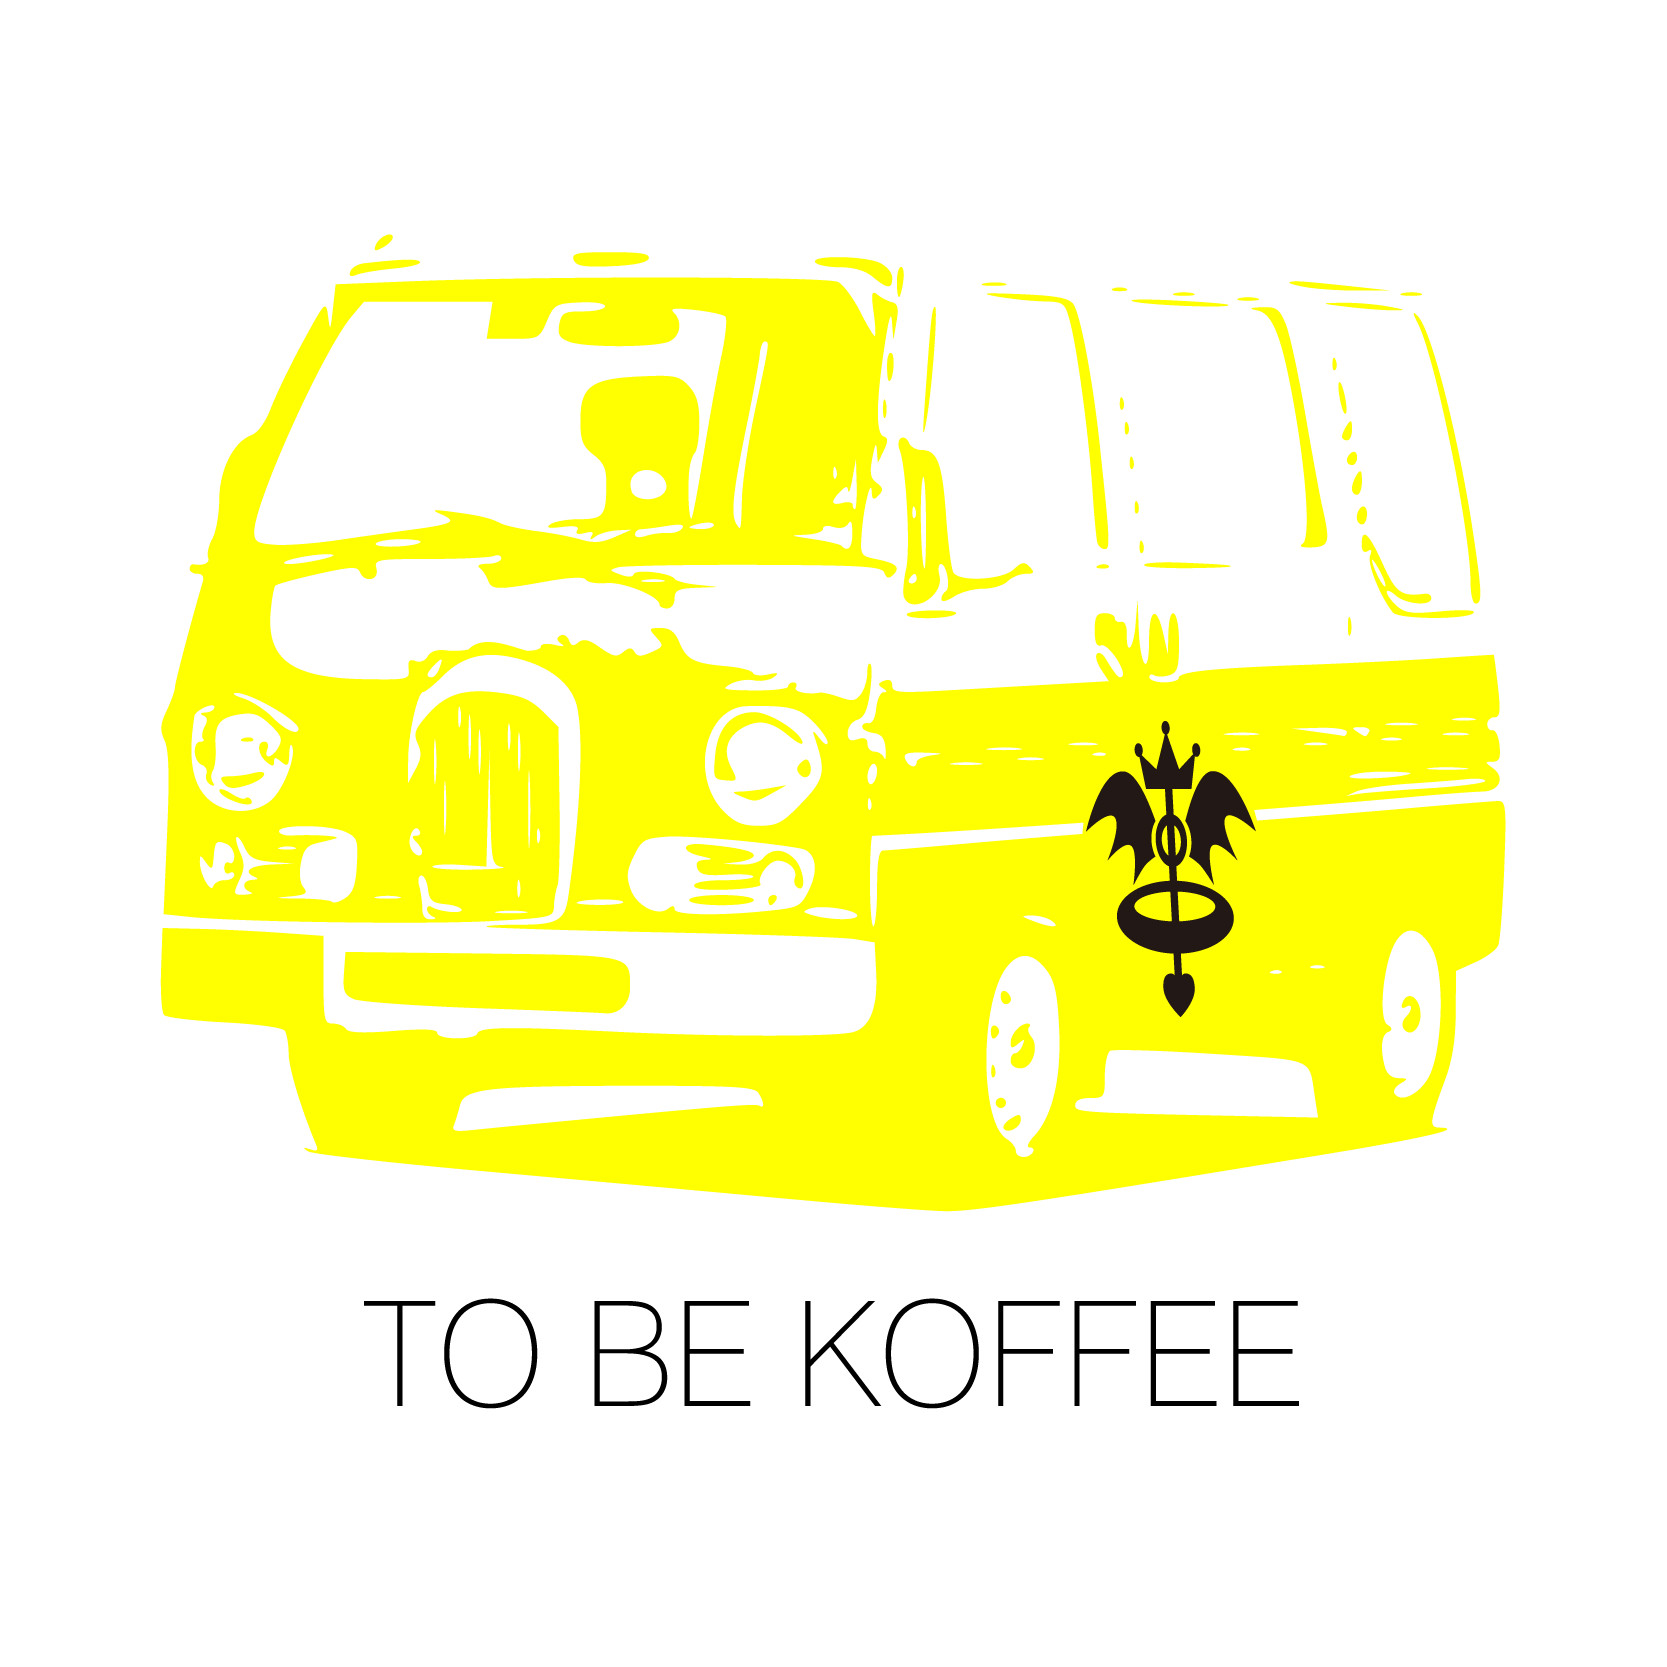 TO BE KOFFEE